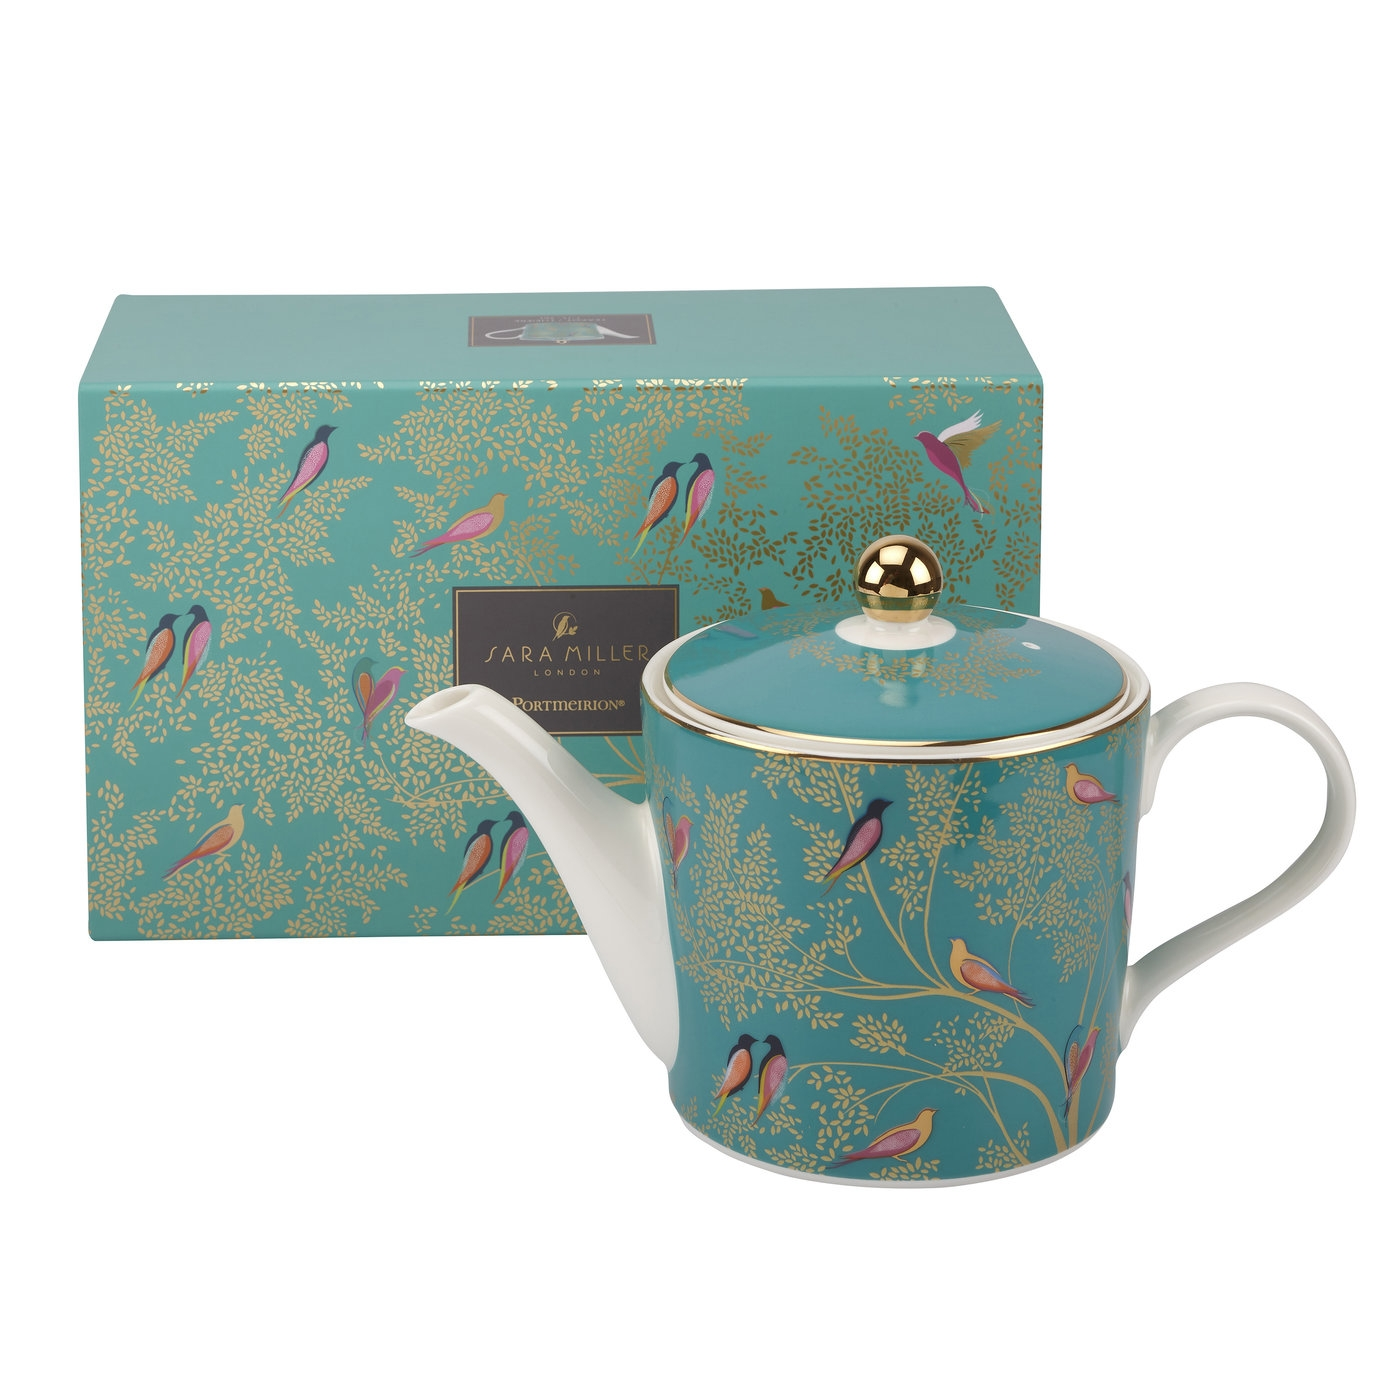 Sara Miller London for Portmeirion Chelsea Collection 2 Pint Teapot Green image number 0